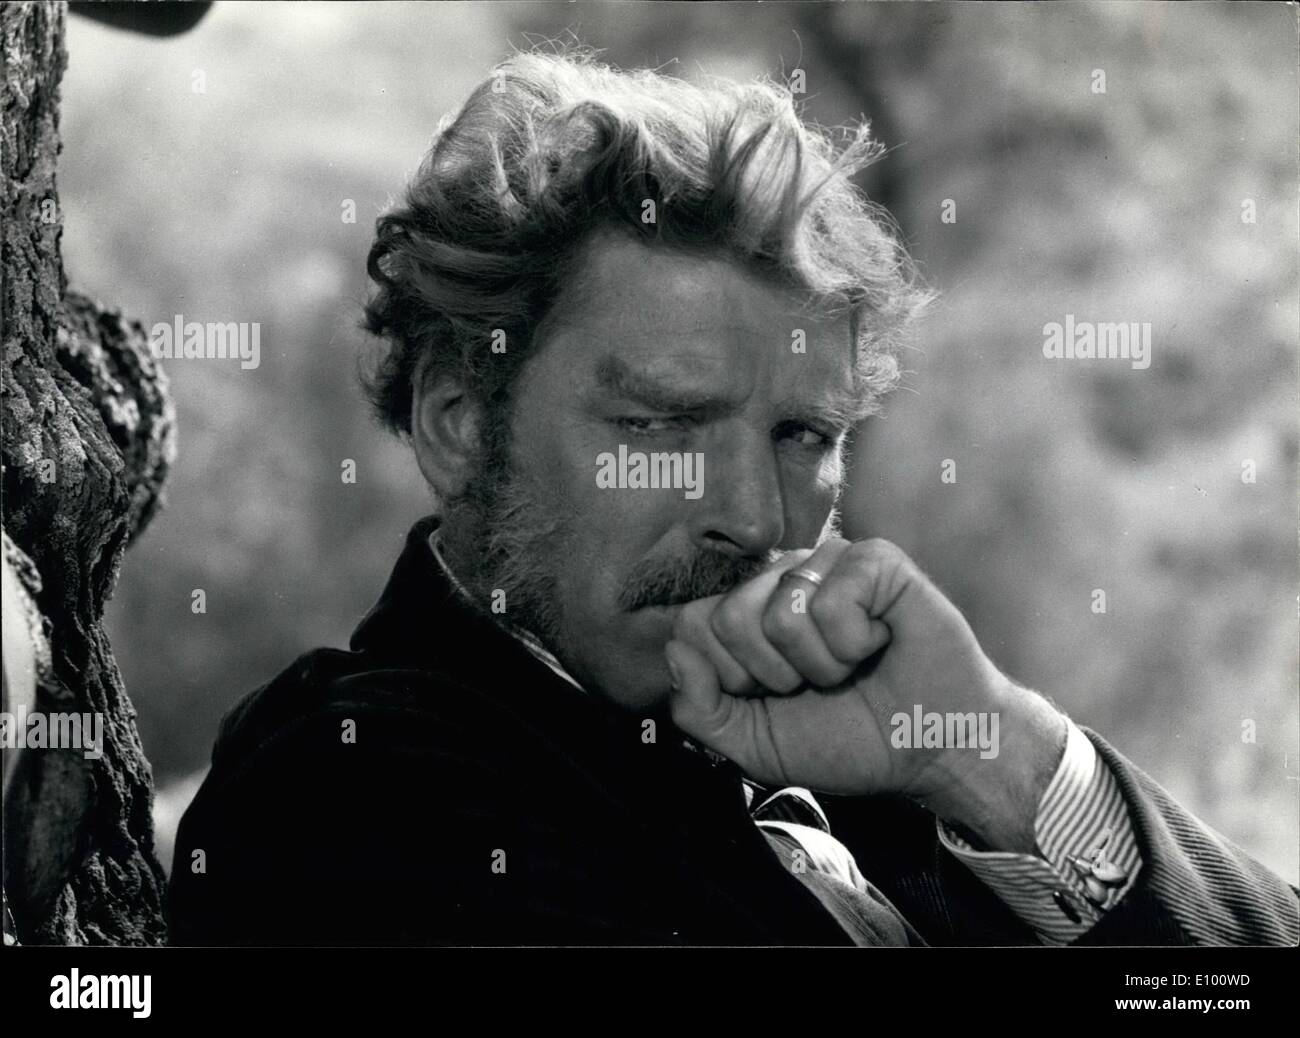 Feb. 02, 1972 - Burt Lancaster stars in ''The Leopard,'' a Titanus production directed by Luchino Visconti and produced by Goffredo Lombardo for 20th Century-Fox release. The film, in Technicolor and Technirama, is adapted from the best-selling novel by Giuseppe Tomasi di Lampedusa. Above Burt Lancaster as Prince Salina. - Stock Image